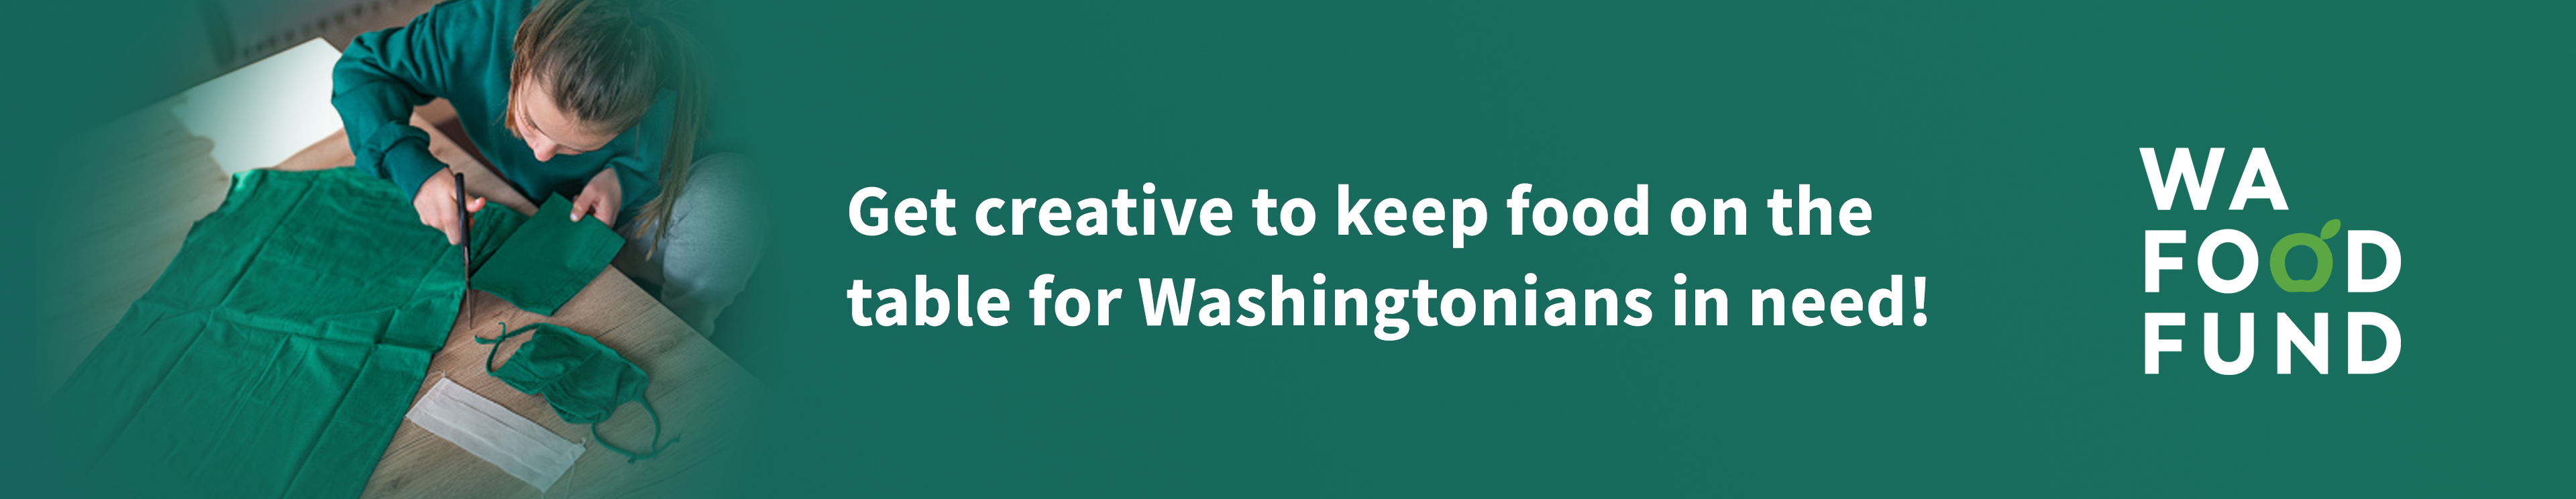 Get creative to keep food on the table for Washingtonians in need!